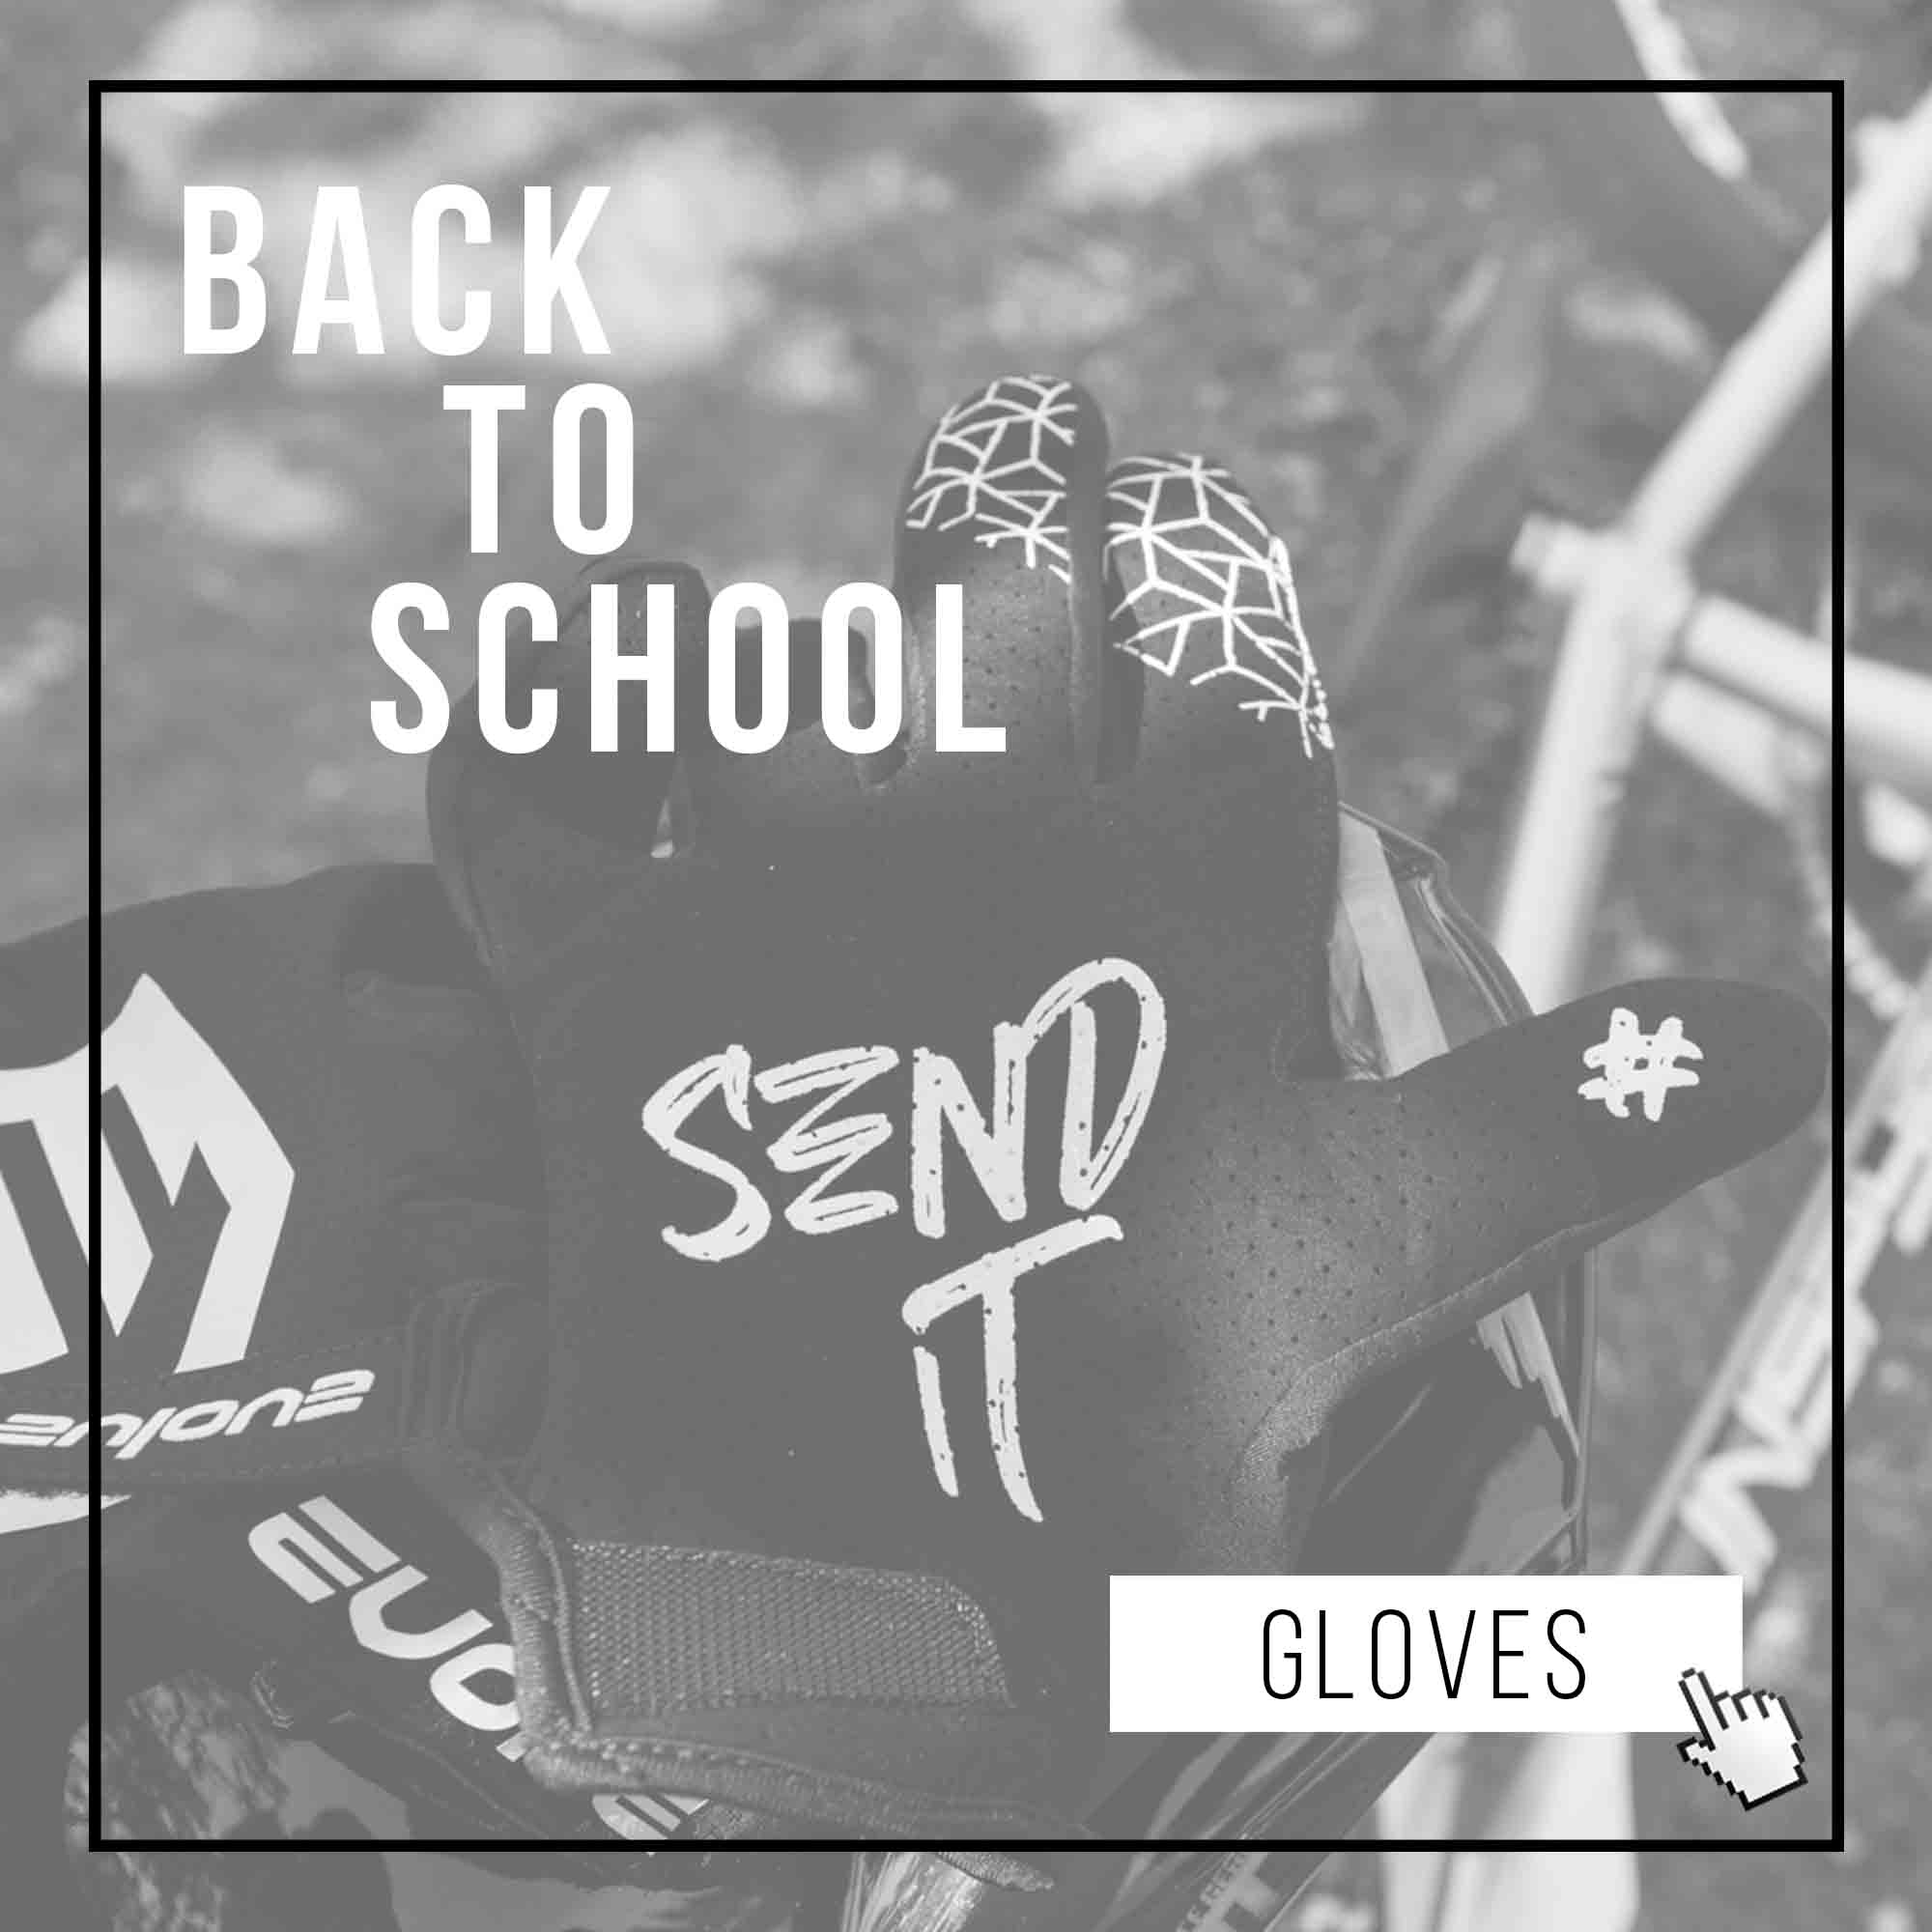 BACK TO SCHOOL GLOVES